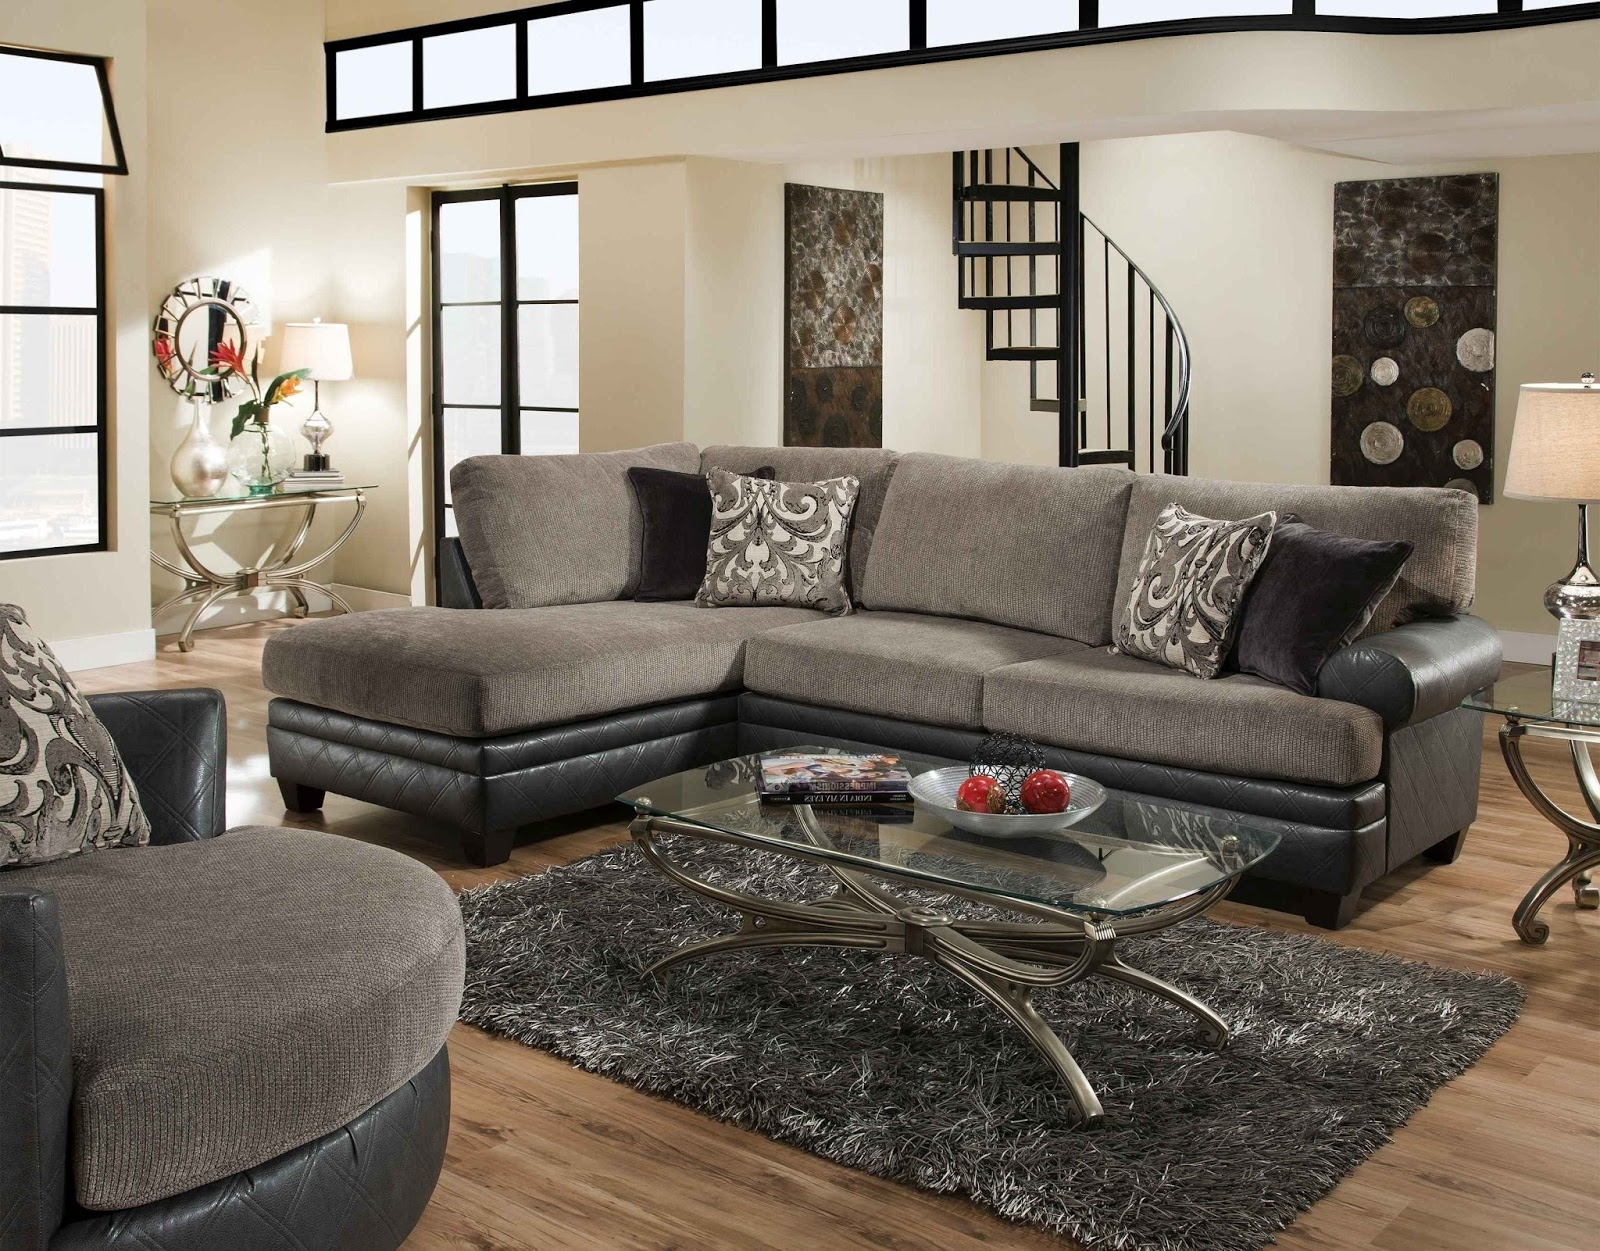 Albany industries sofa albany industries sectional sofa for Allison recliner sectional sofa by albany industries